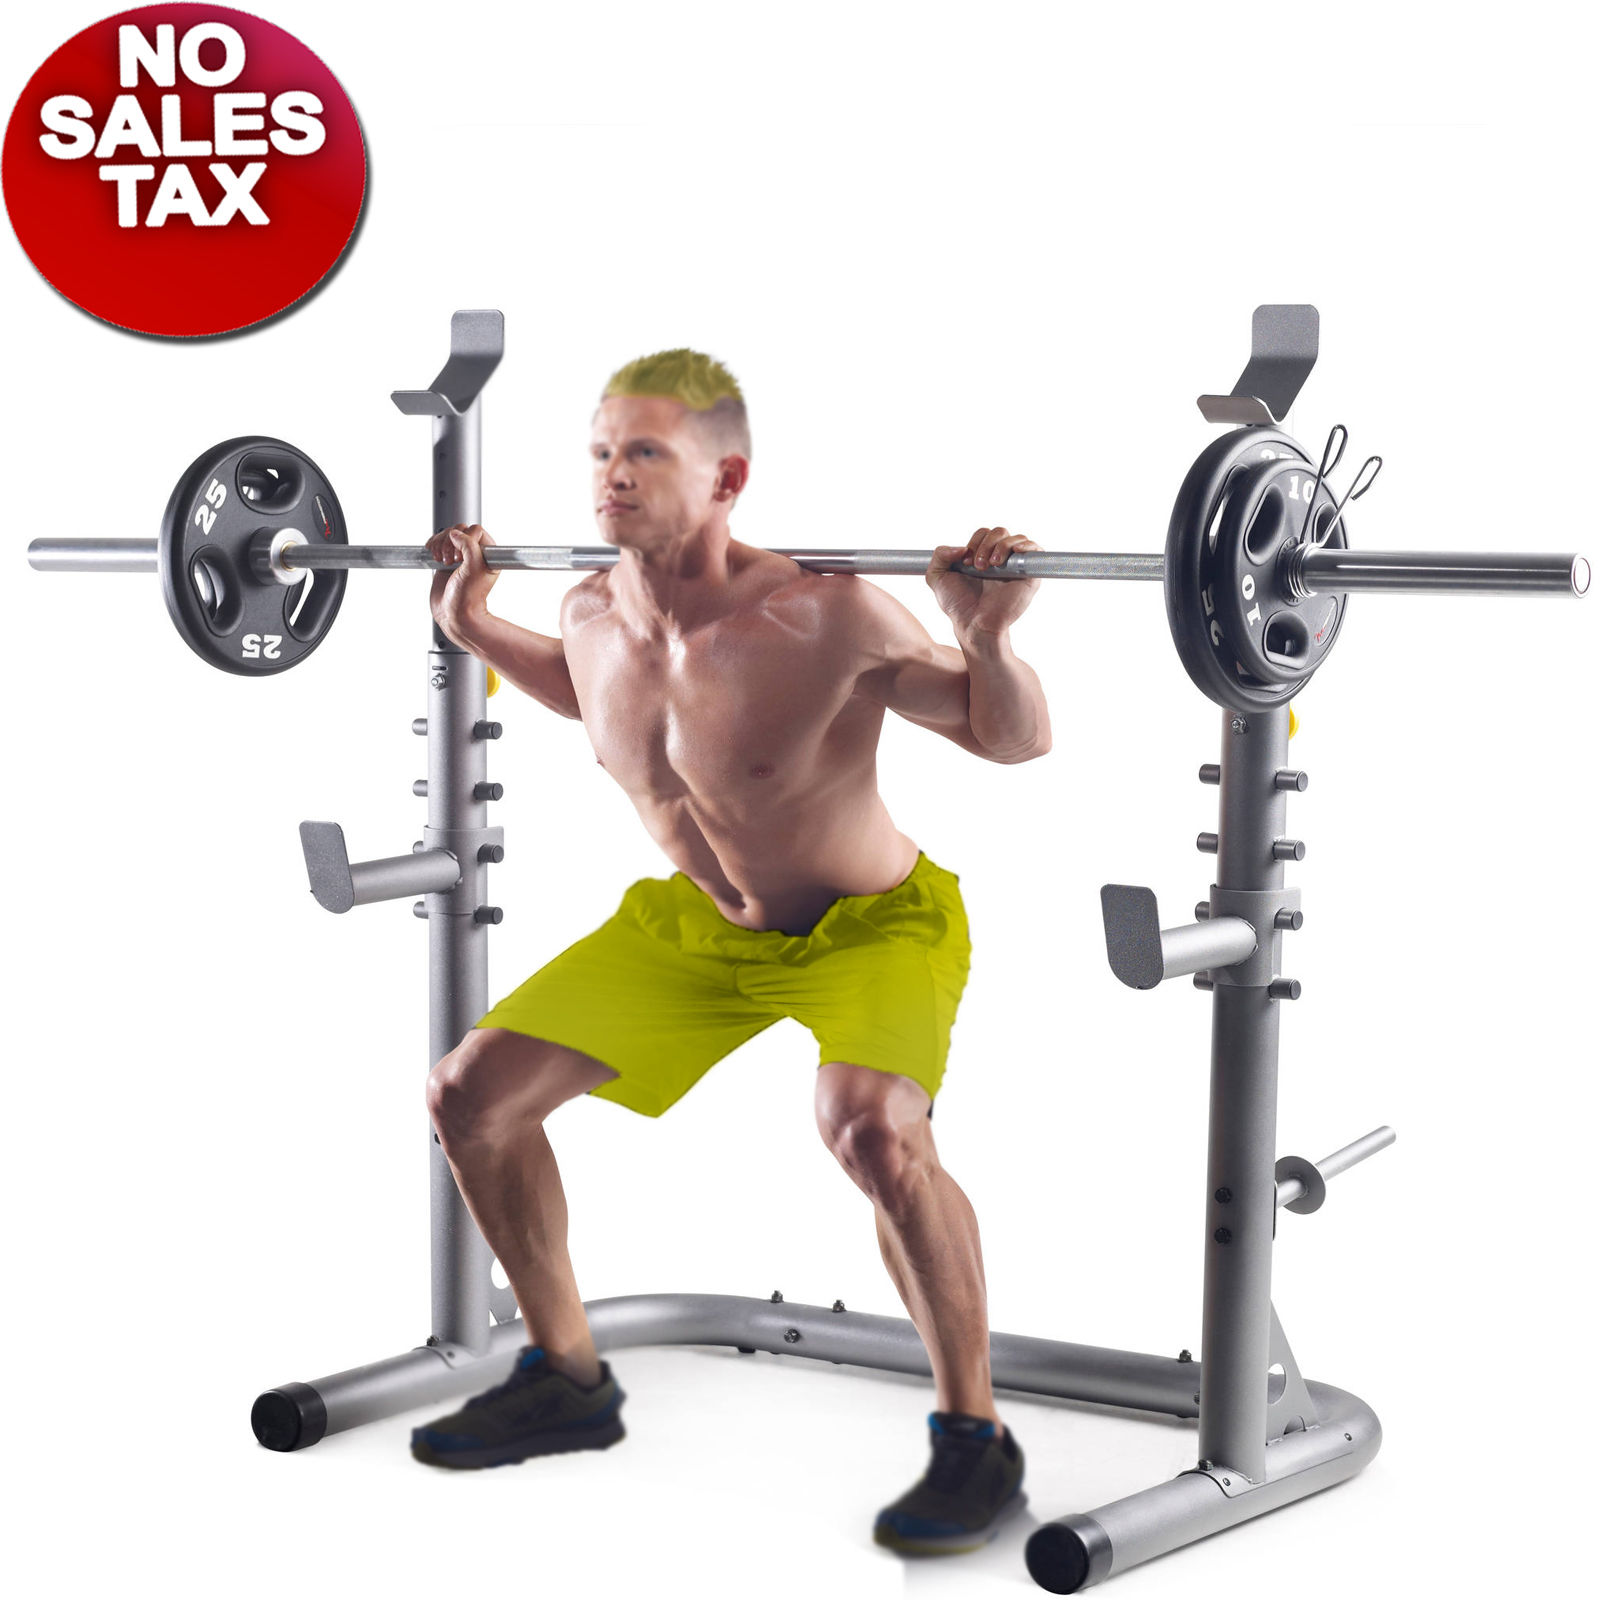 Squat stand workout gym power rack weight lifting home